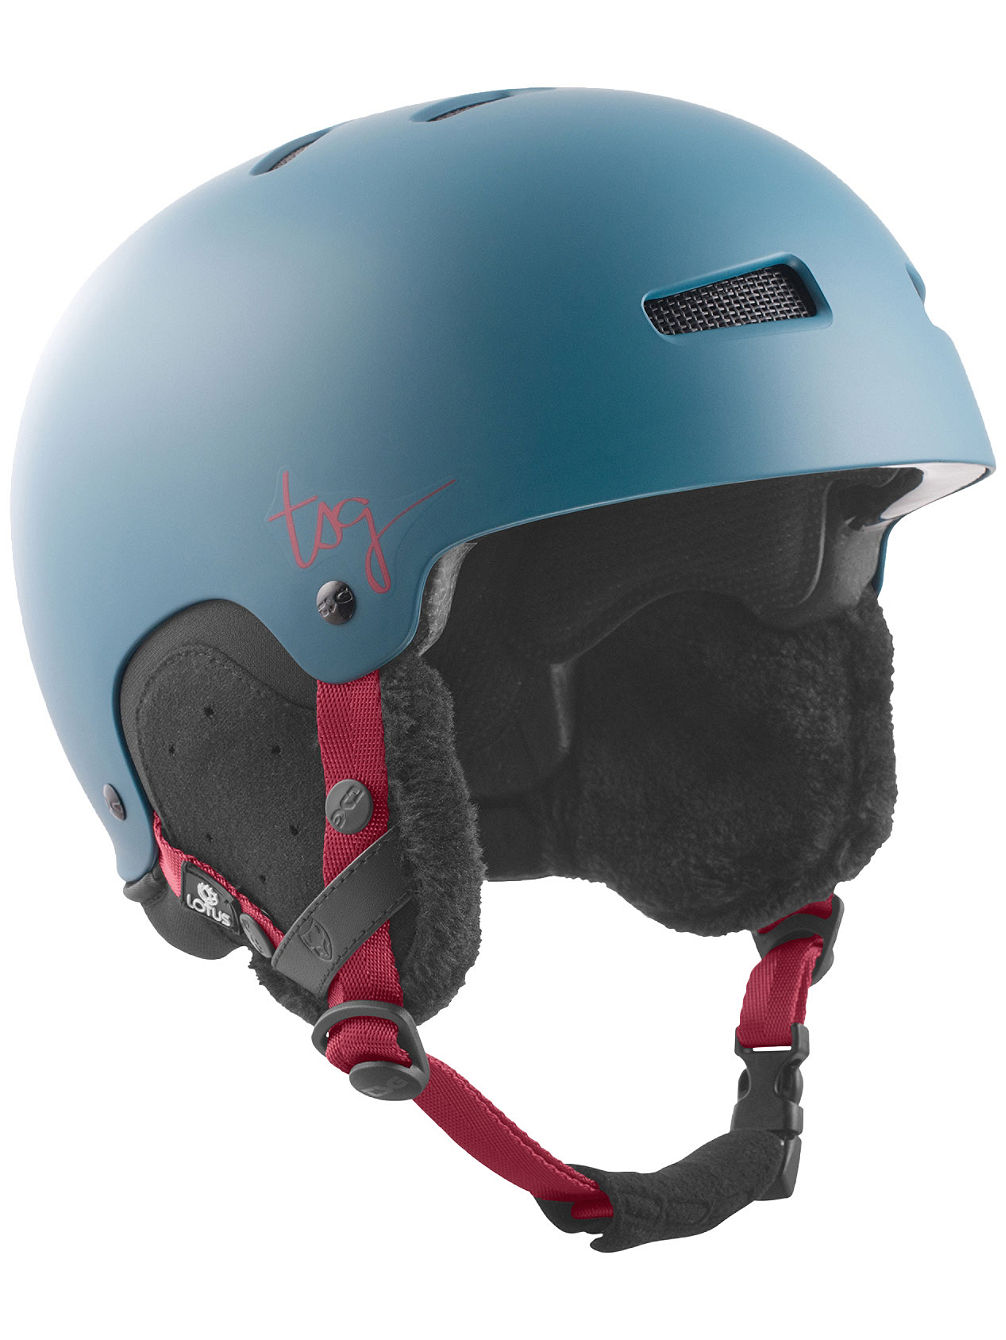 Lotus Solid Color Helmet